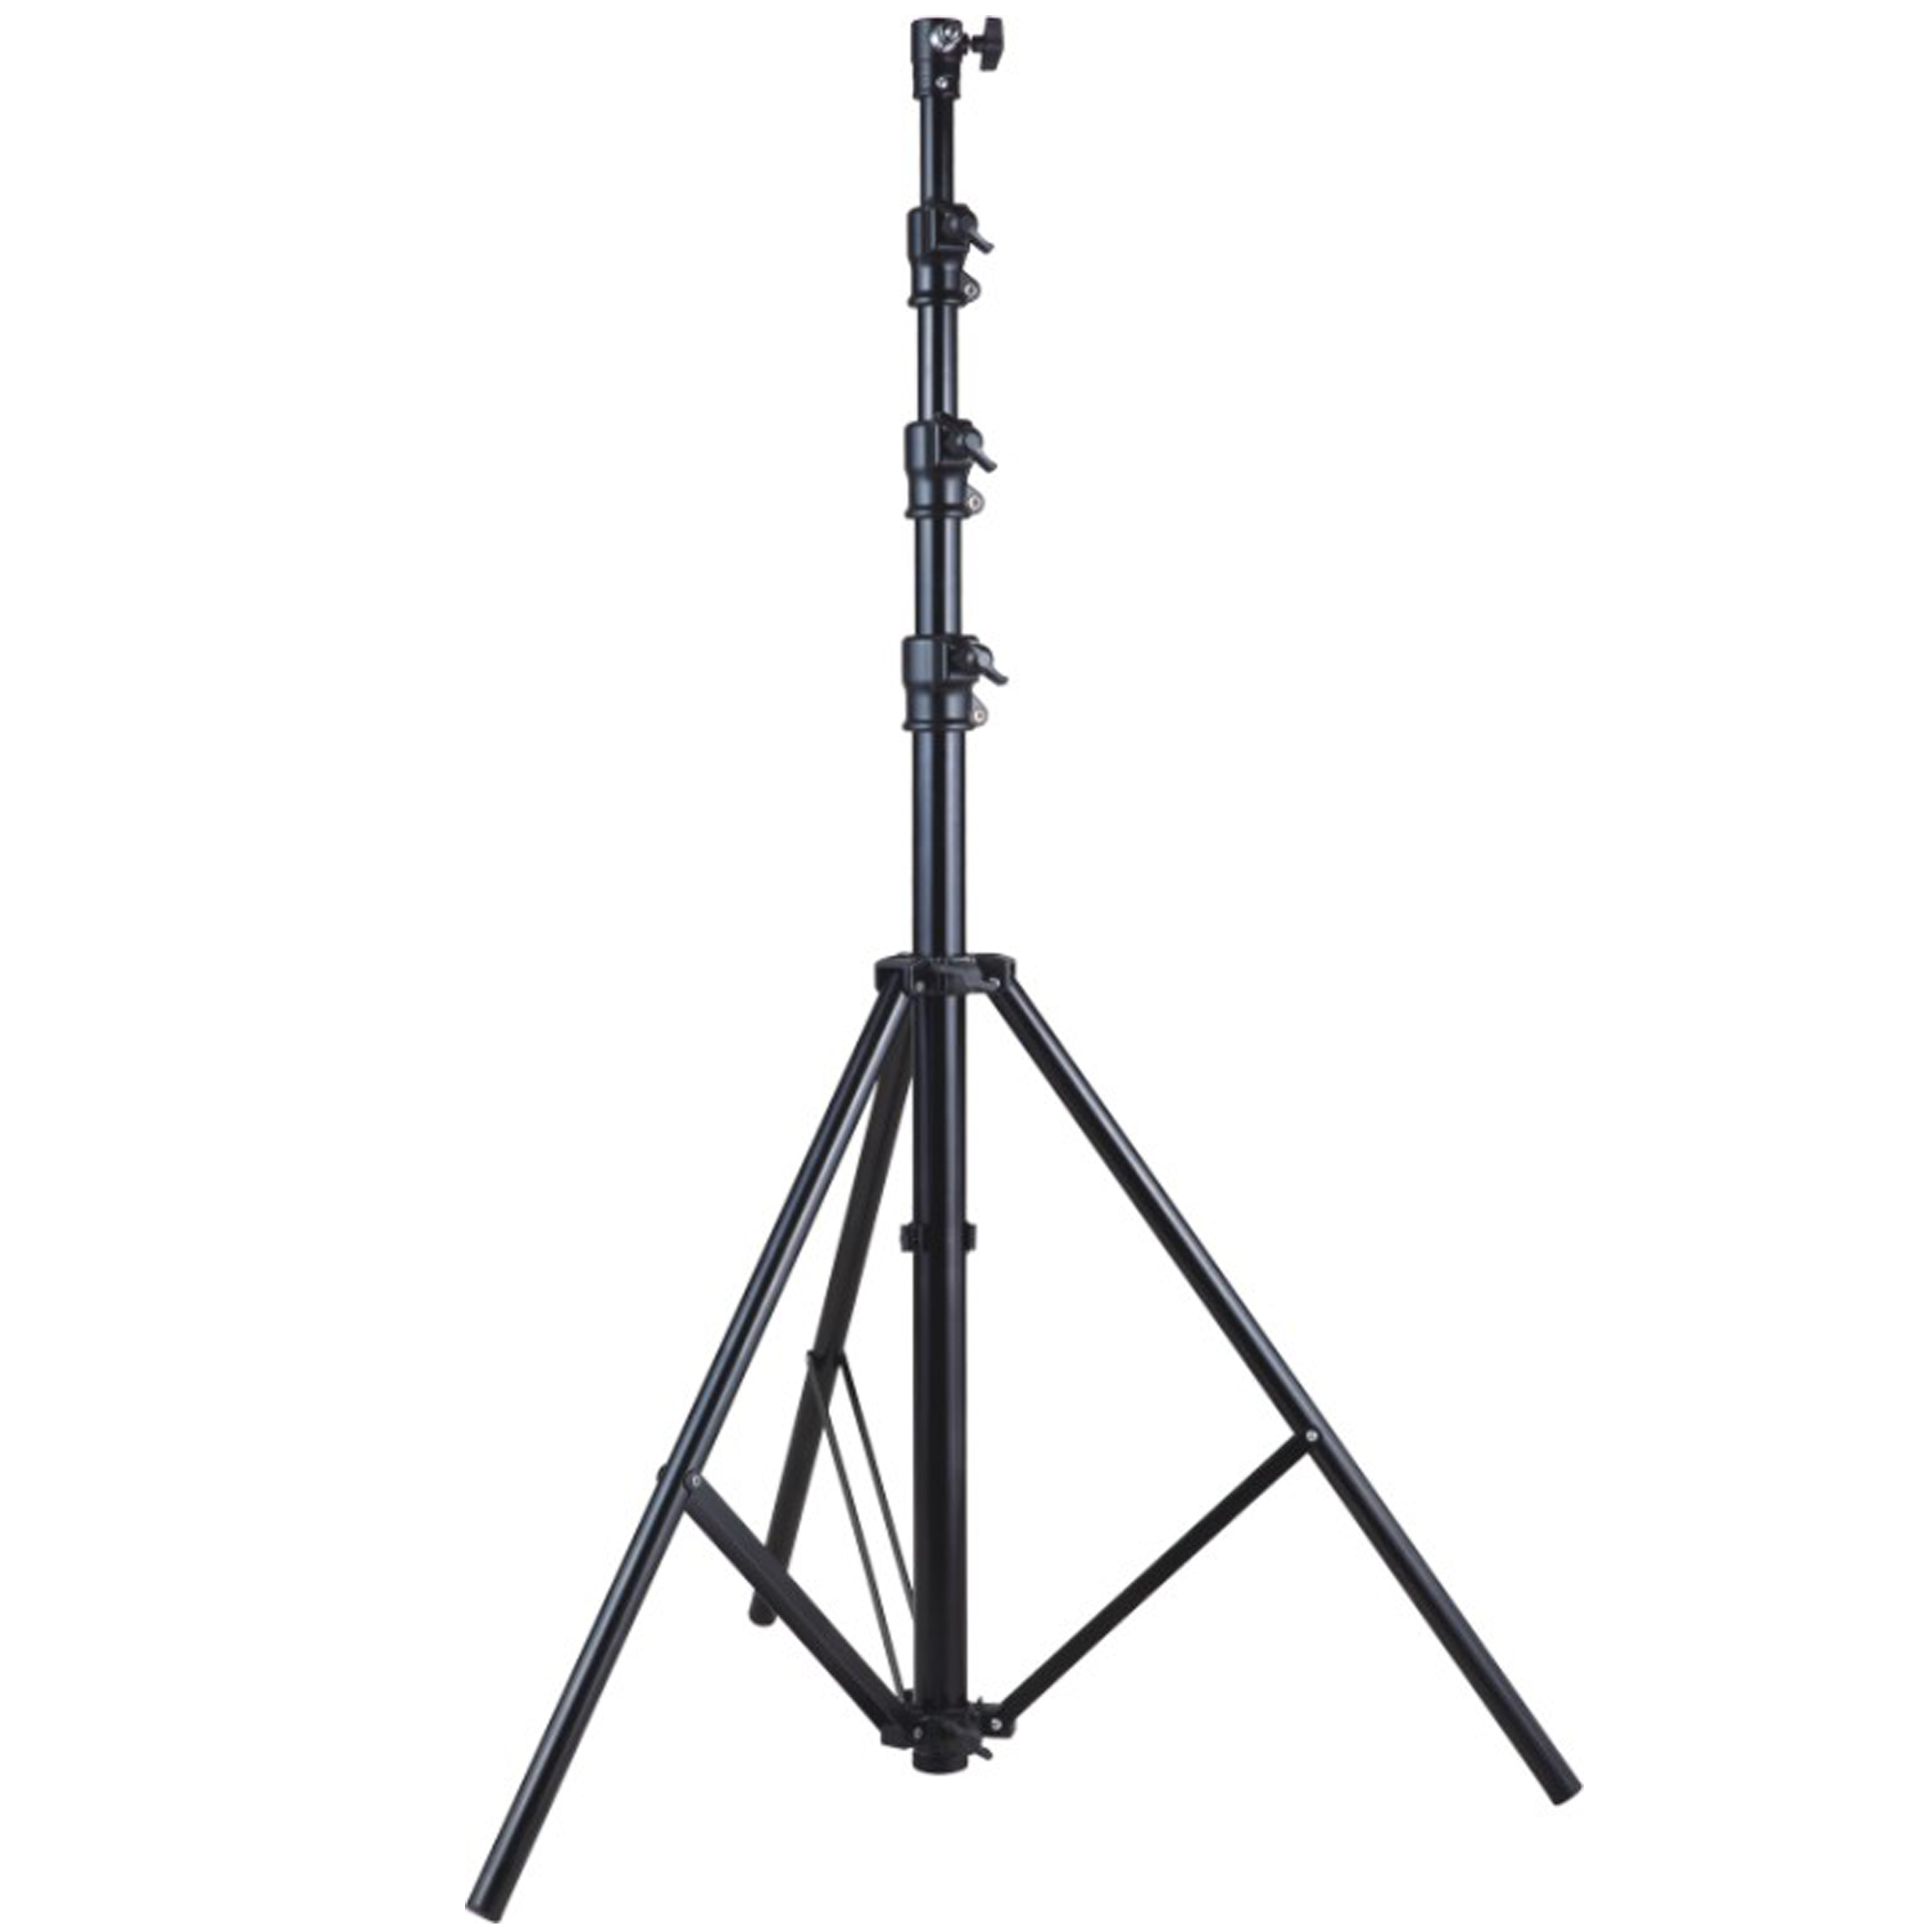 DM-2800FP: Aluminum Light Weight Stand with Air Cushion